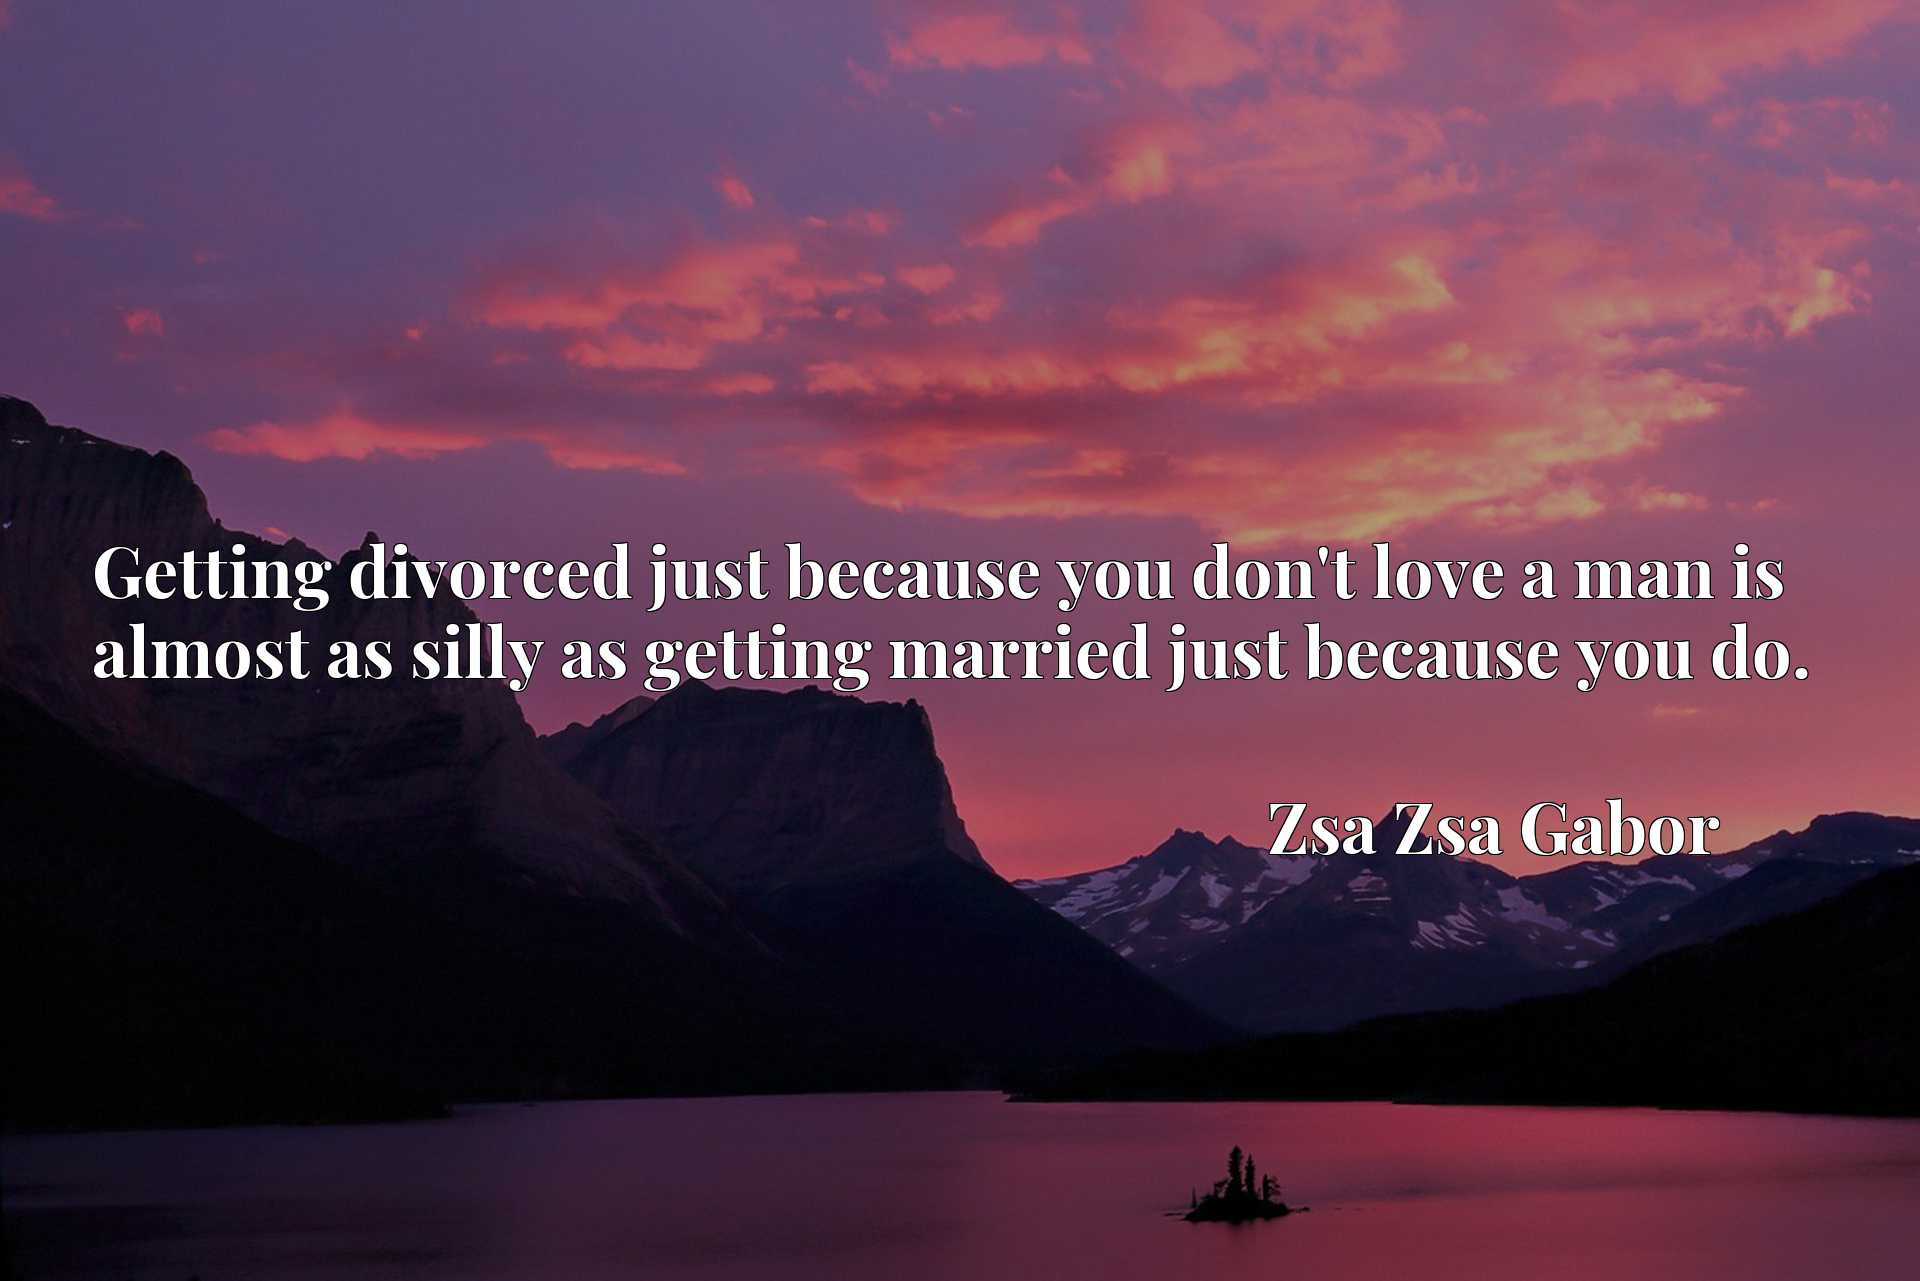 Getting divorced just because you don't love a man is almost as silly as getting married just because you do.